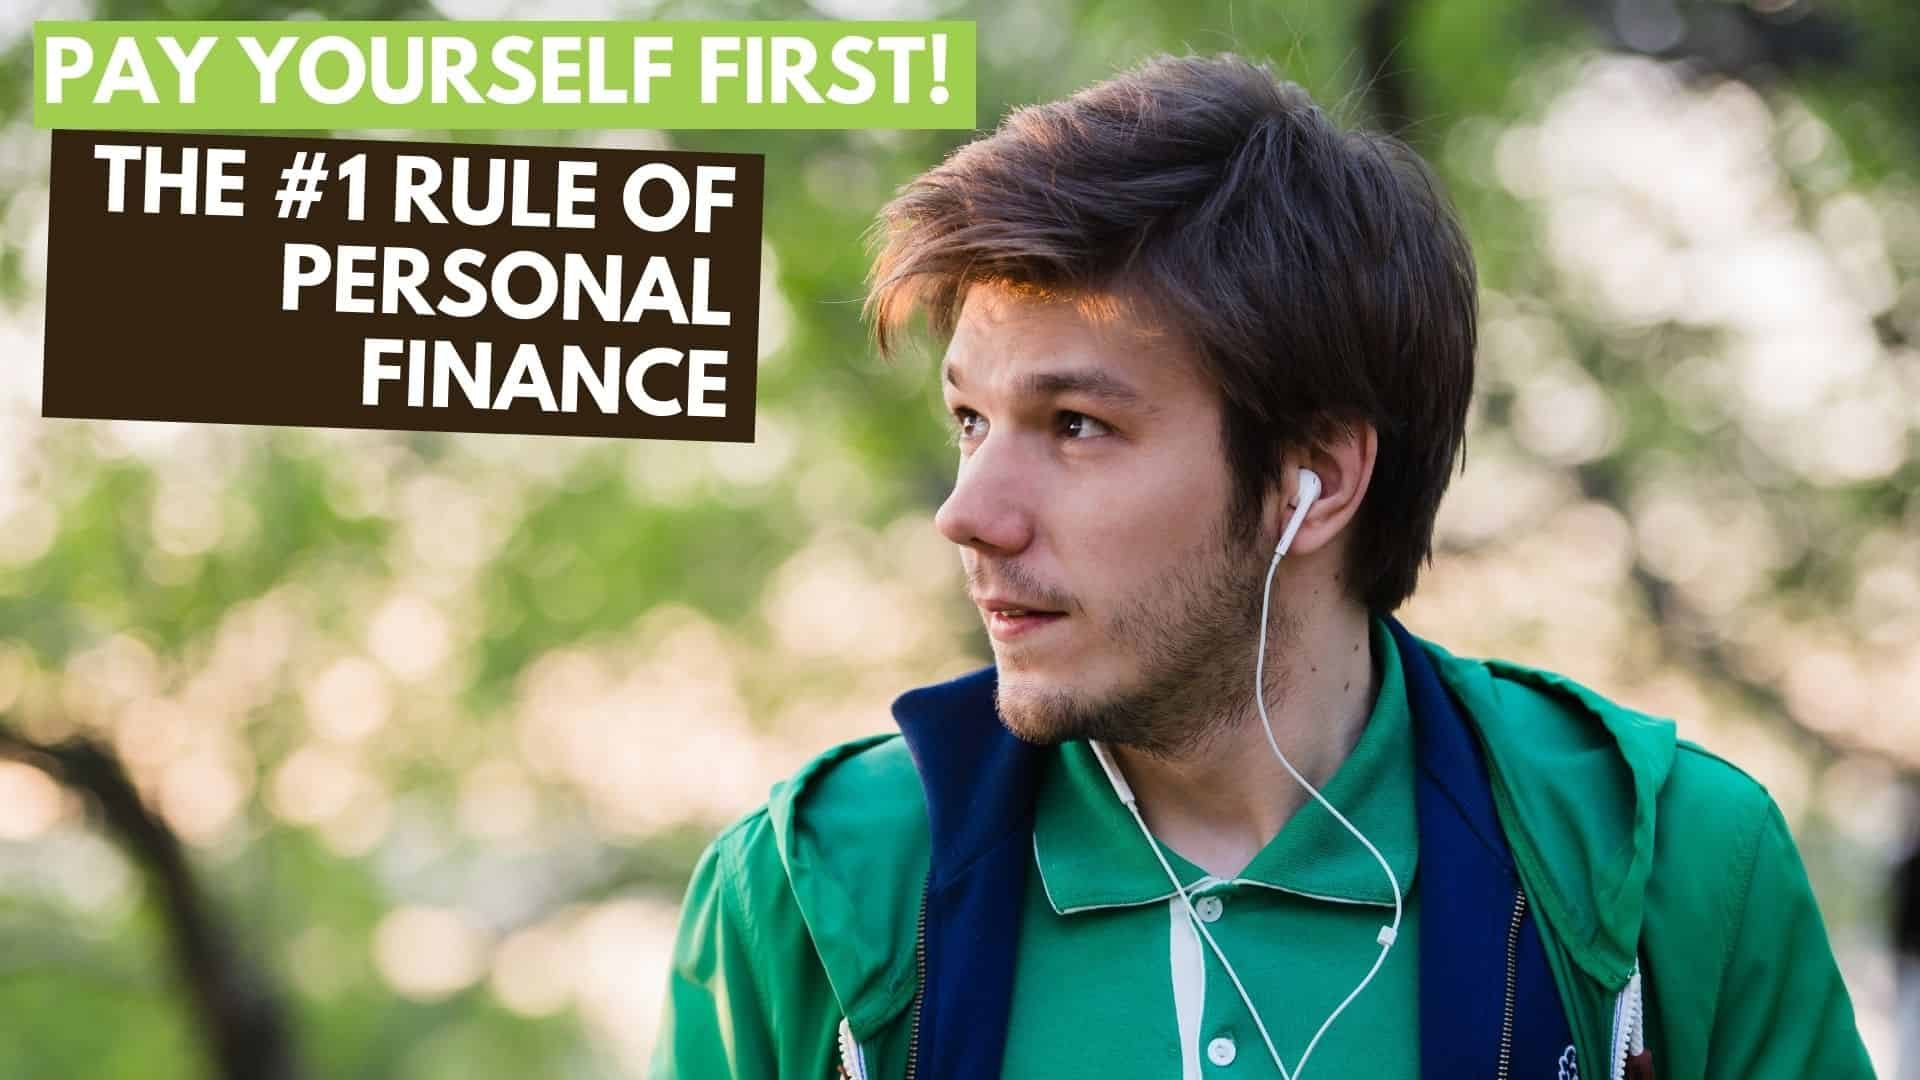 Pay Yourself First: The #1 Personal Finance Rule